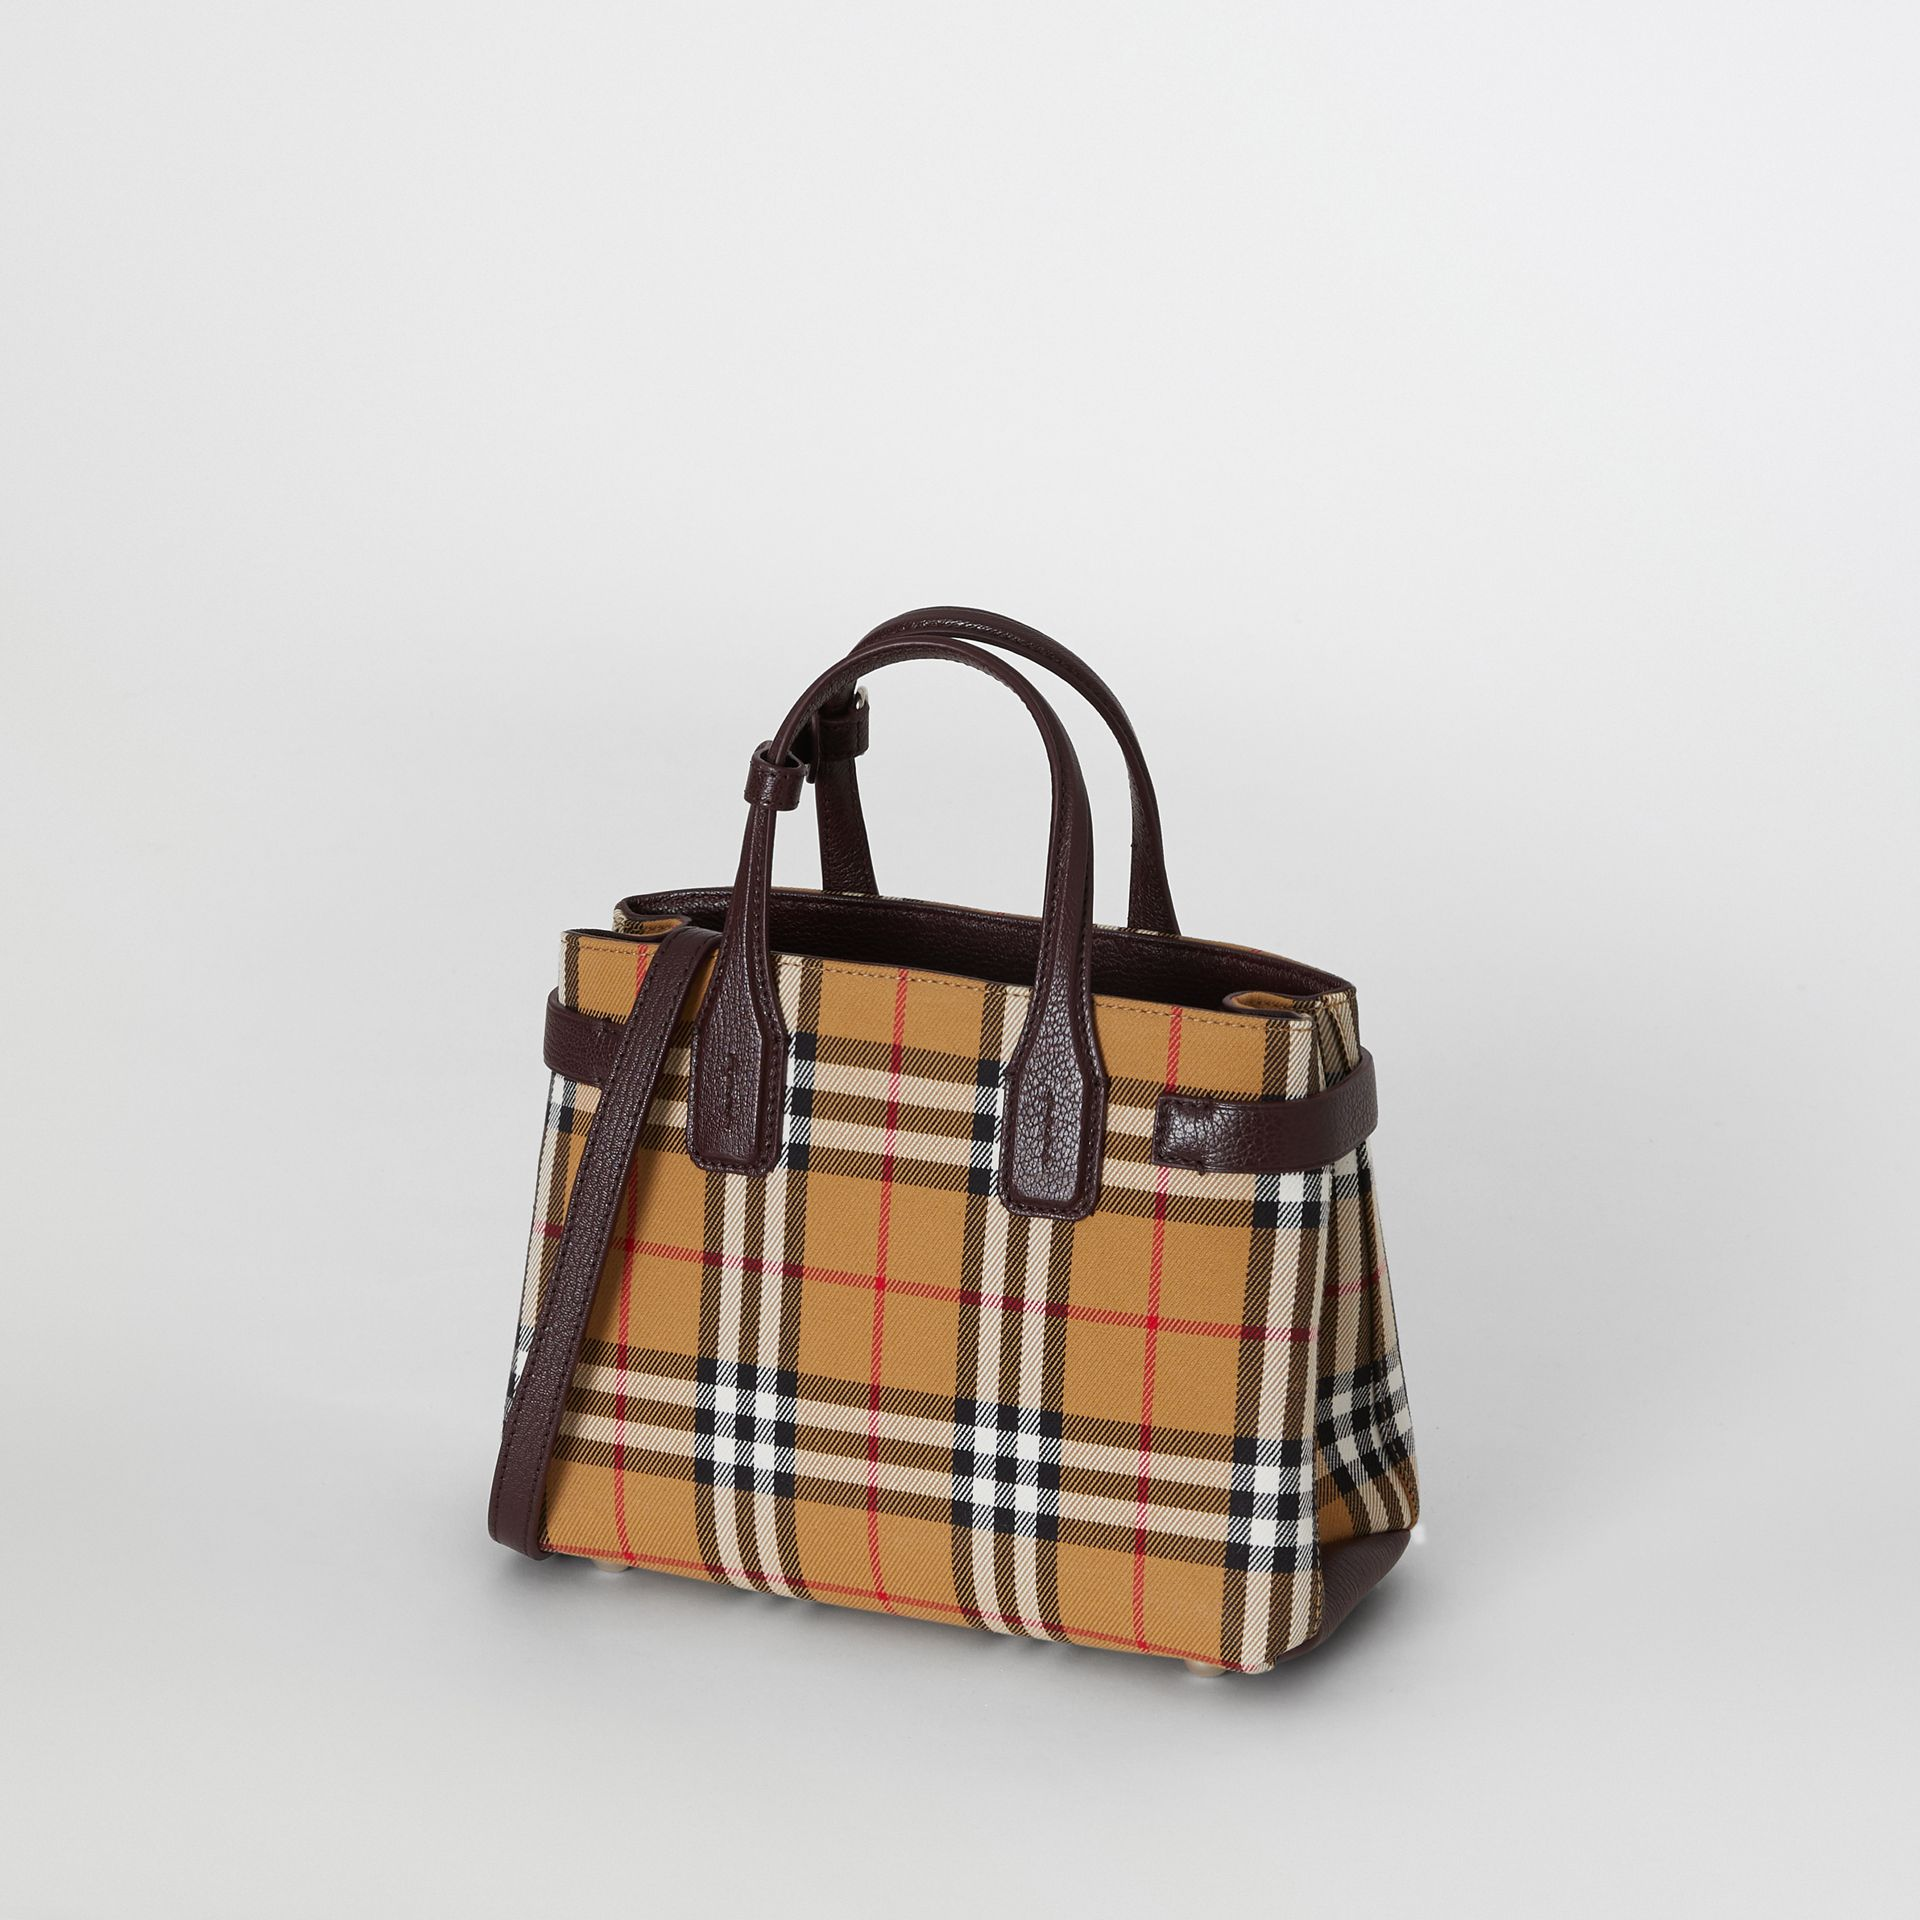 Petit sac The Banner en tissu Vintage check et cuir (Bordeaux Intense) - Femme | Burberry - photo de la galerie 4